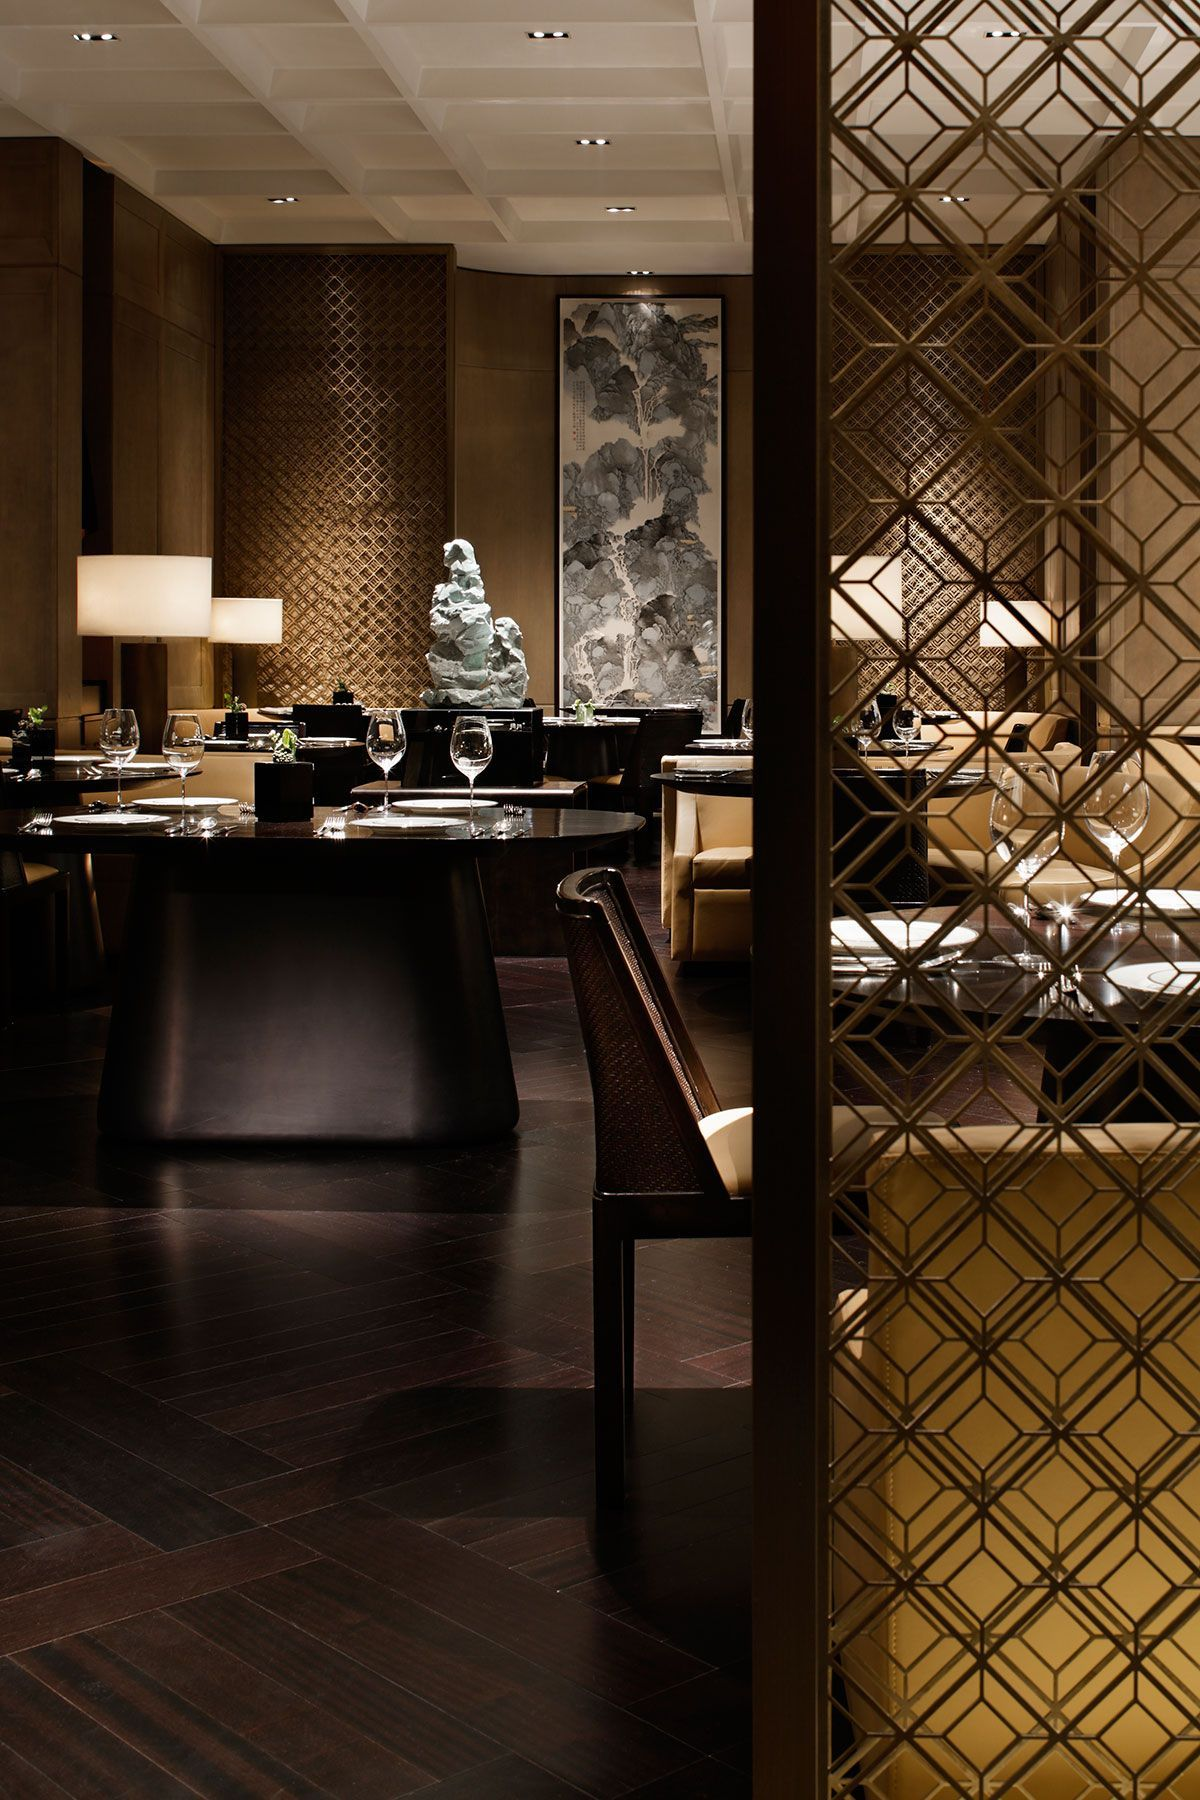 Yabu pushelberg waldorf astoria beijing yabu pushelberg - Interior design for hotels and restaurants ...